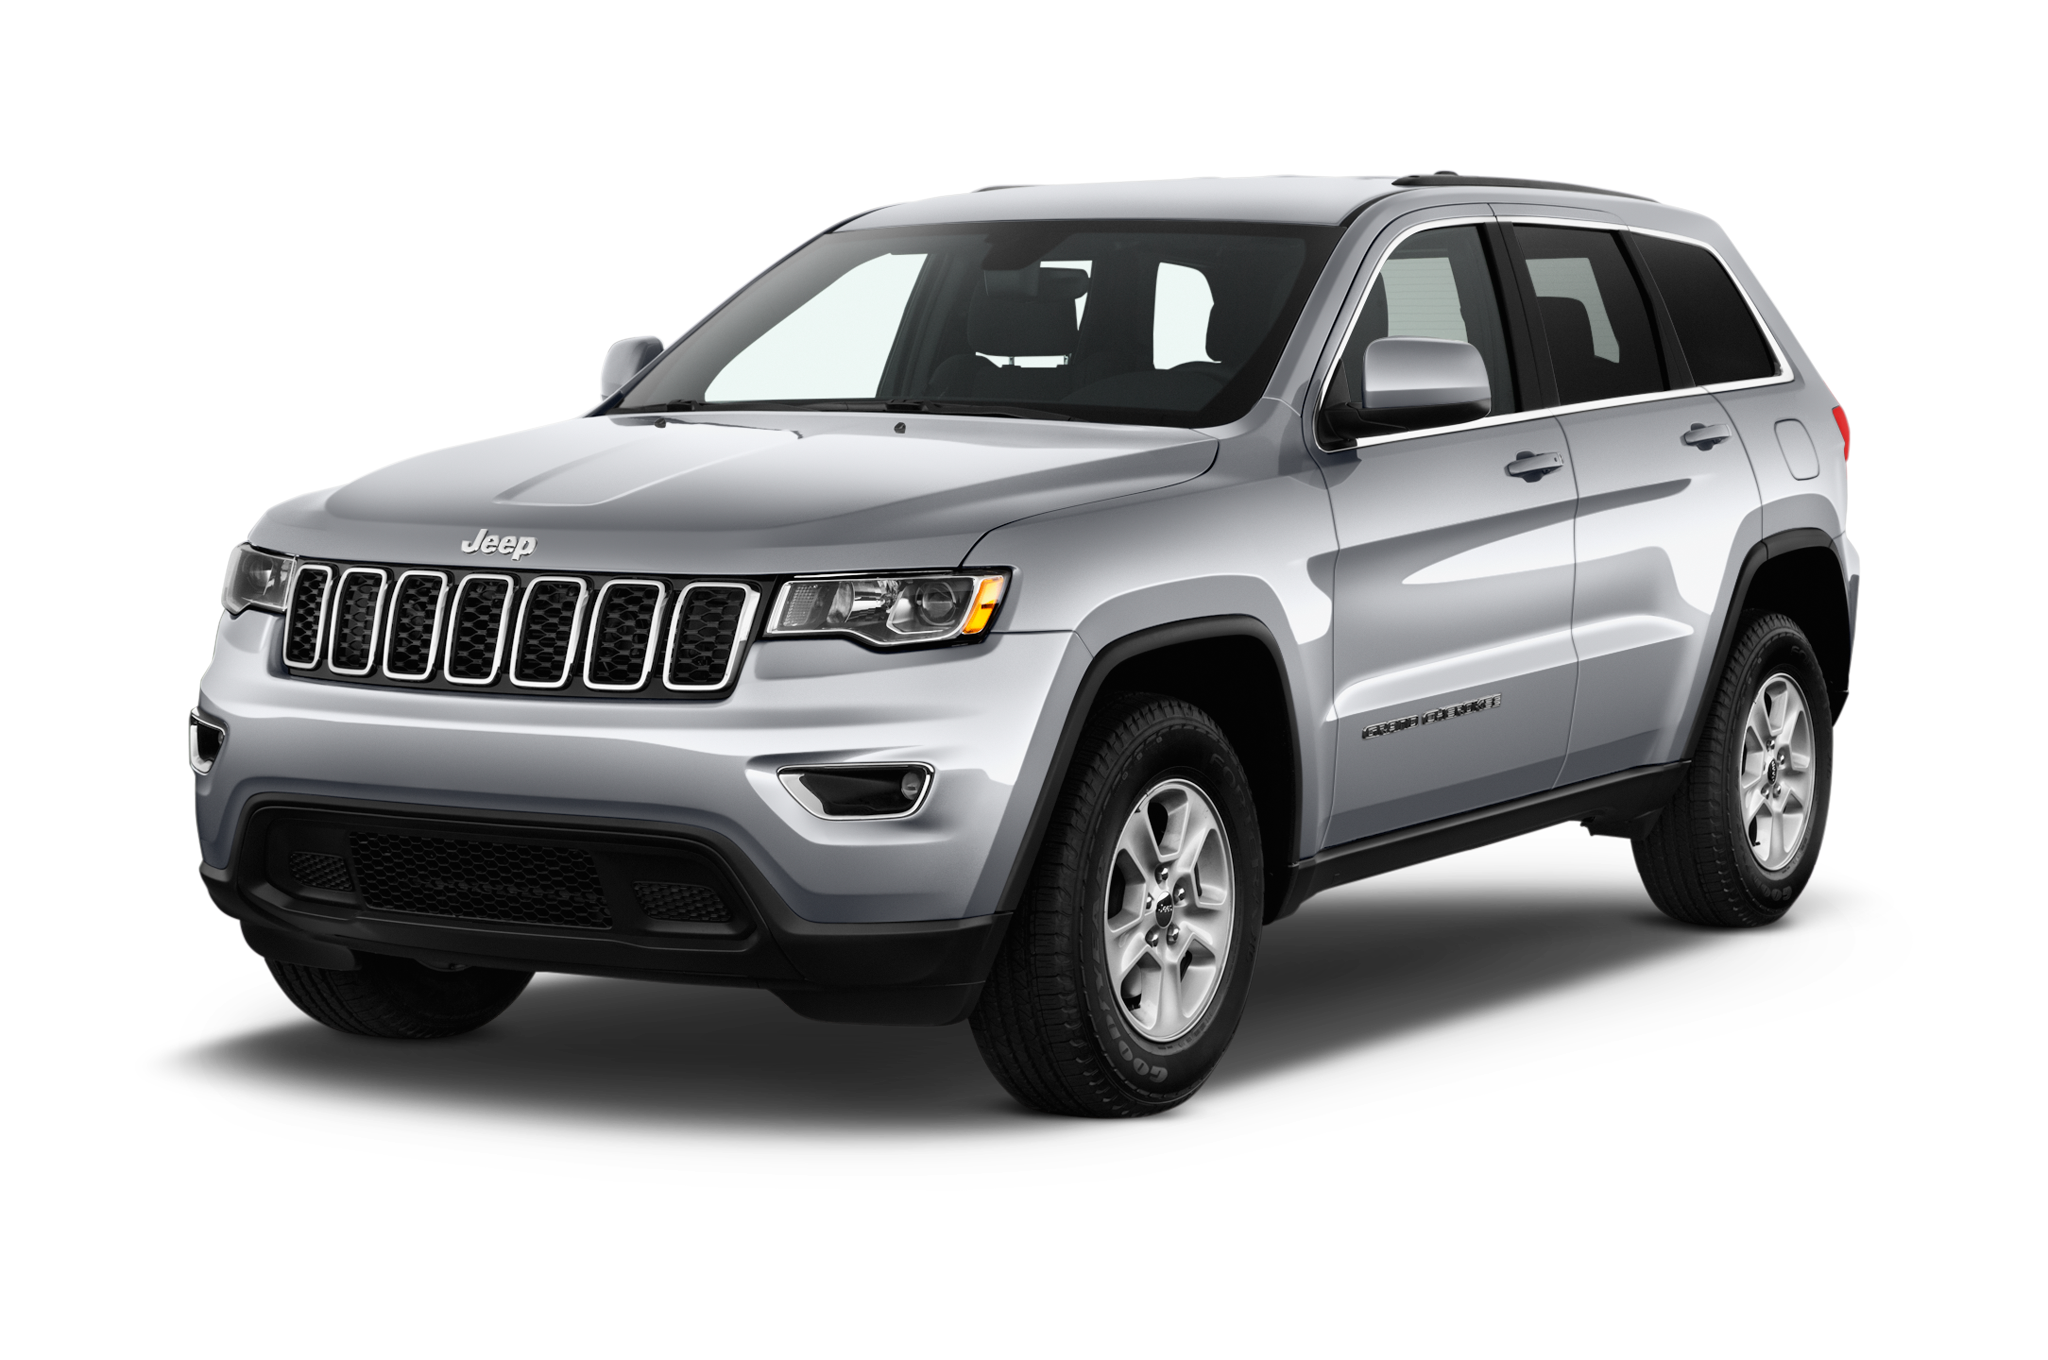 Jeep grand cherokee png. Reviews and rating